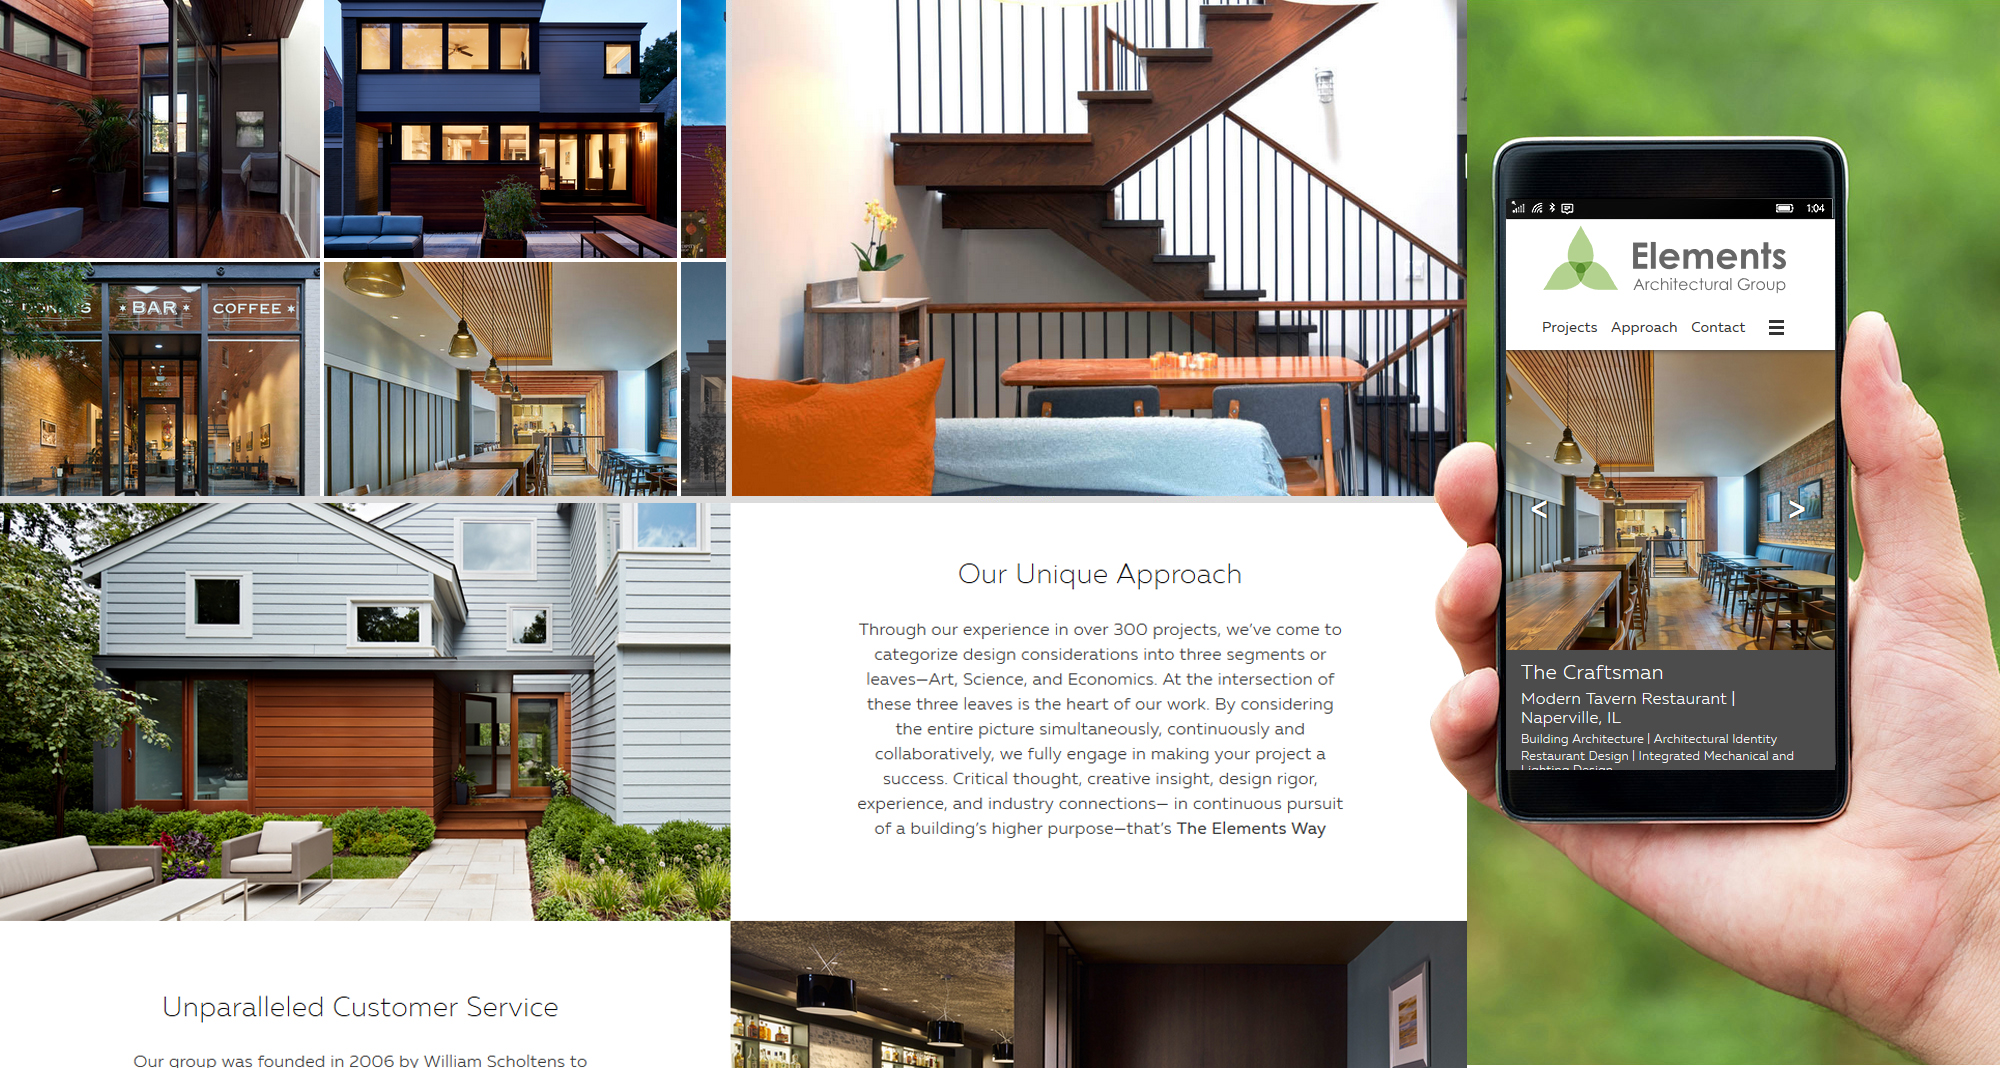 Milwaukee web marketing for Elements Architectural Group